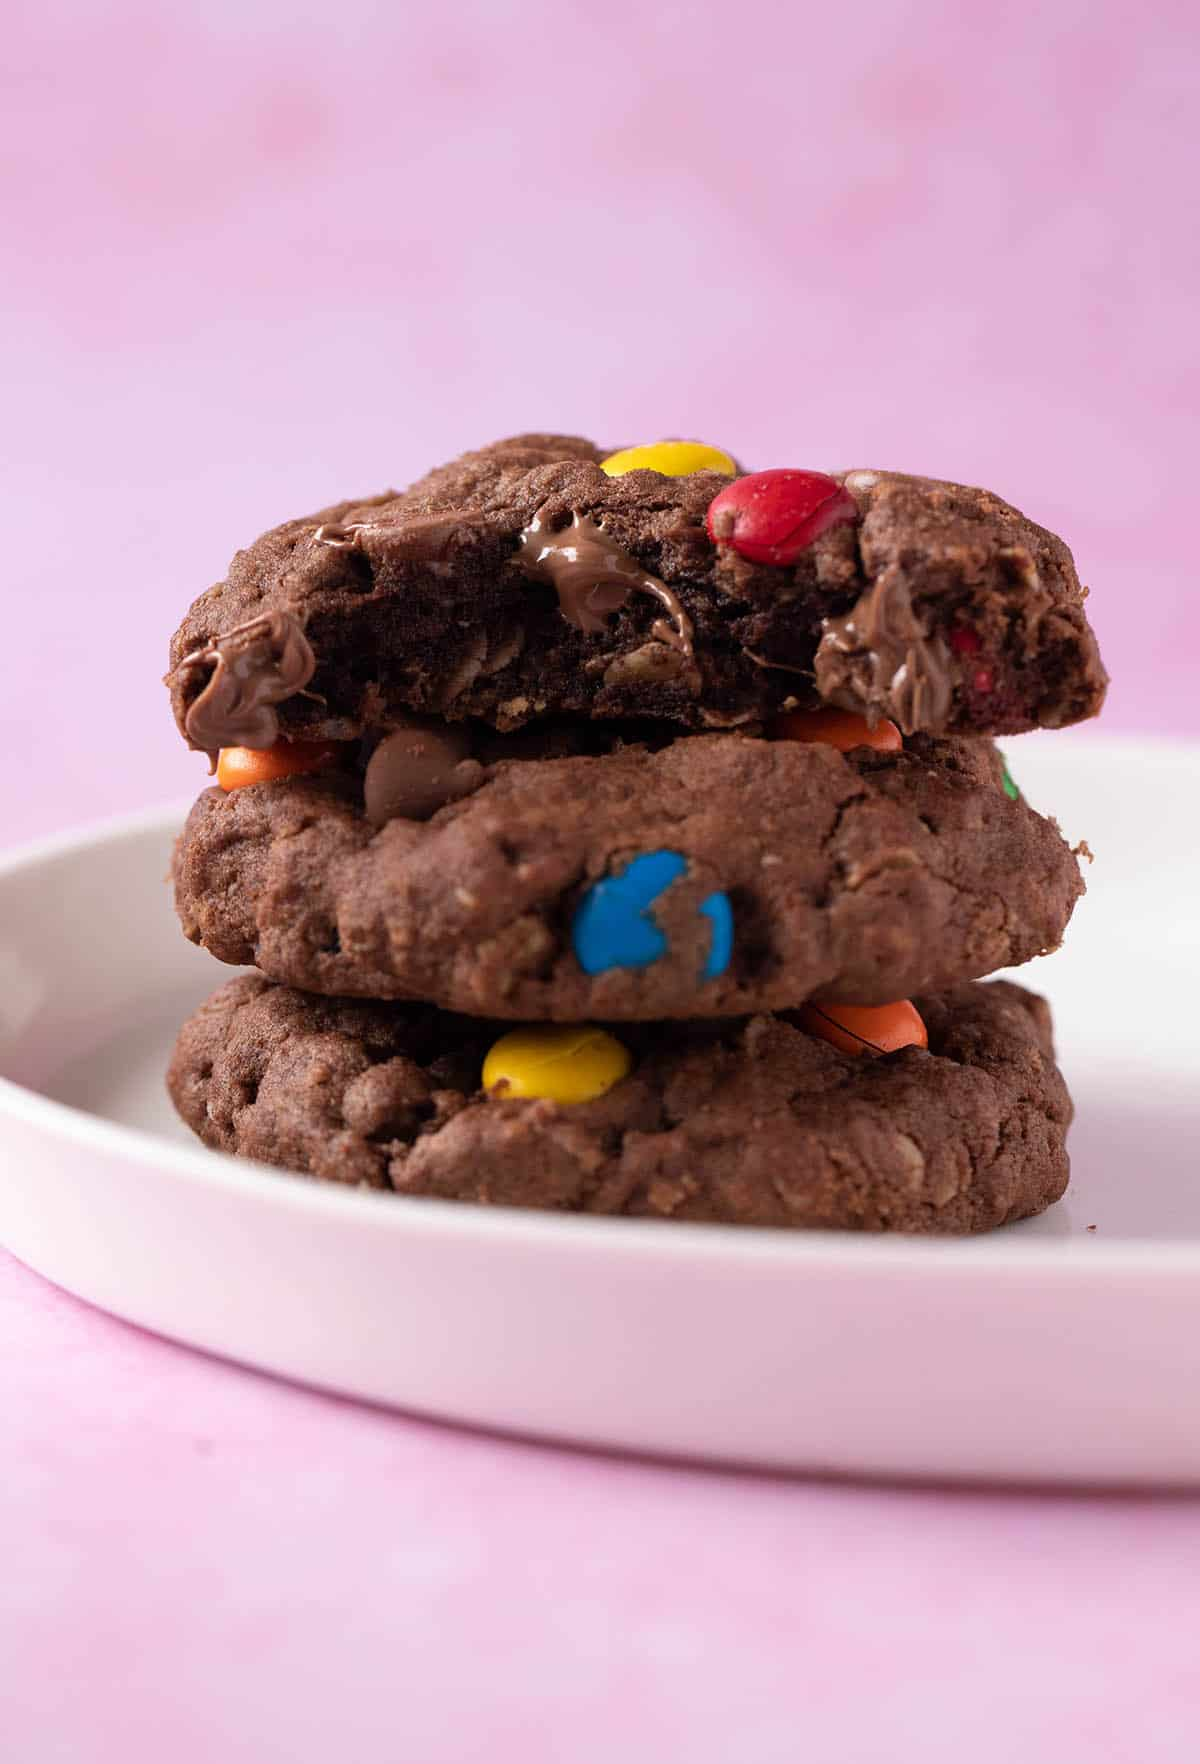 A stack of Chocolate Monster Cookies with a bite taken out of it